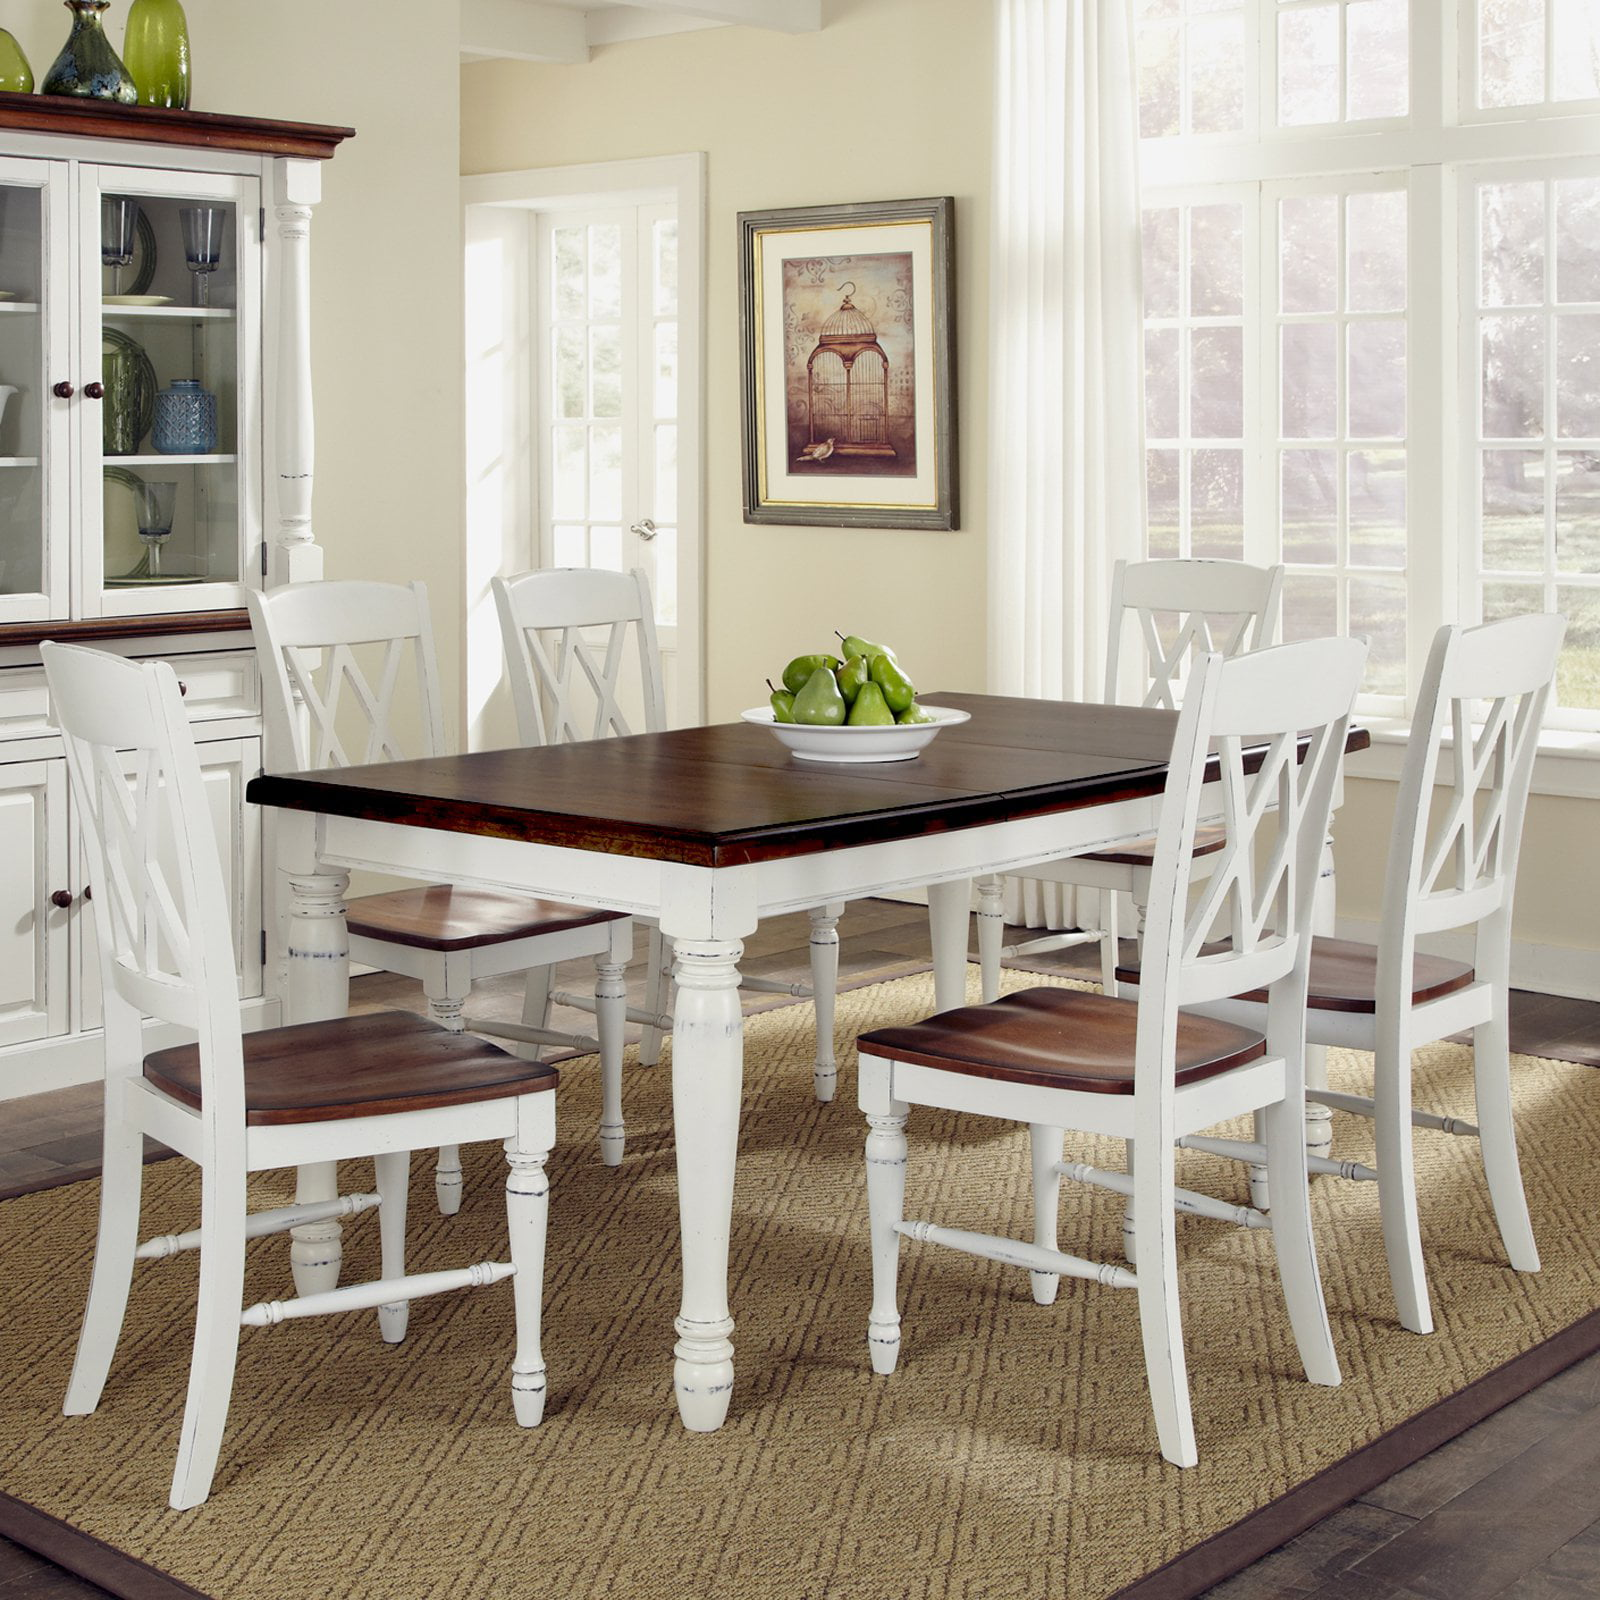 Home Styles Monarch Rectangular Dining Table And 6 Double X Back Chairs,  Multiple Finishes   Walmart.com